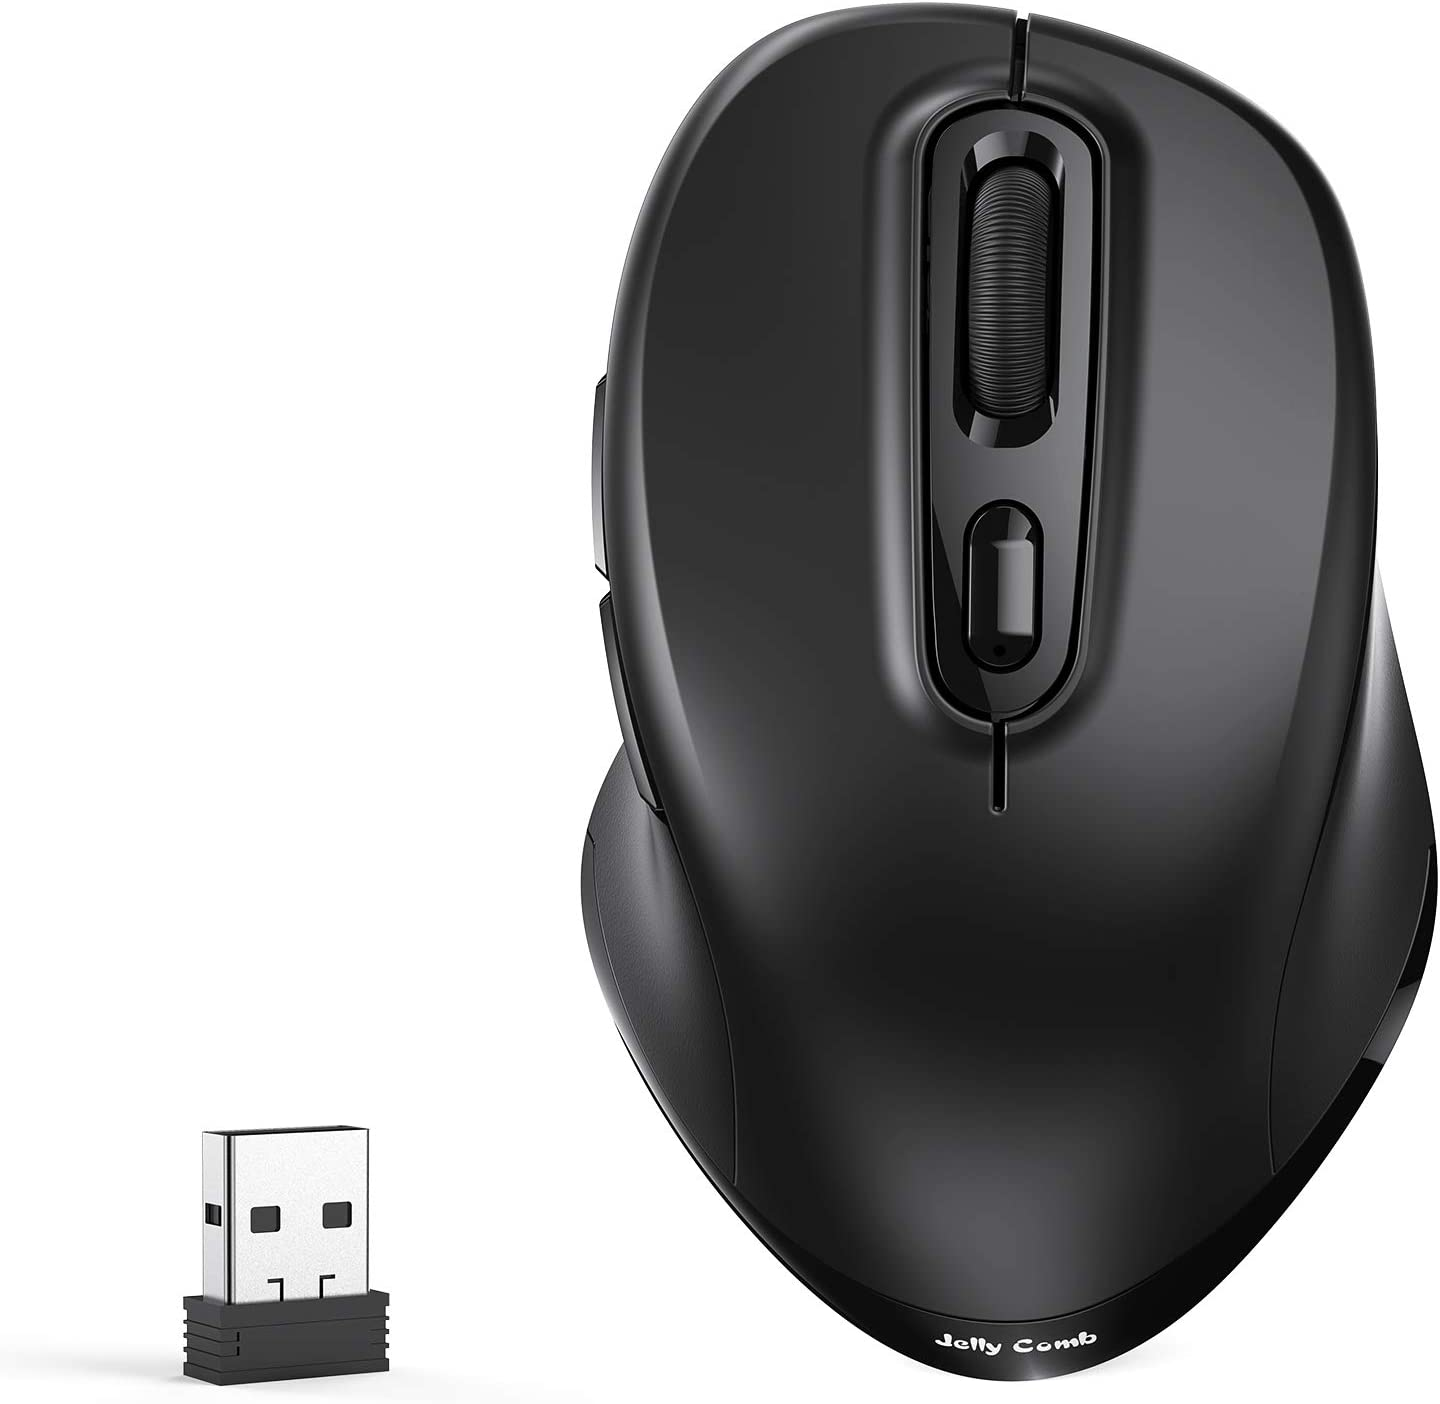 Jelly Comb Bluetooth Wireless Mouse 2 4g Usb Mouse Computers Accessories